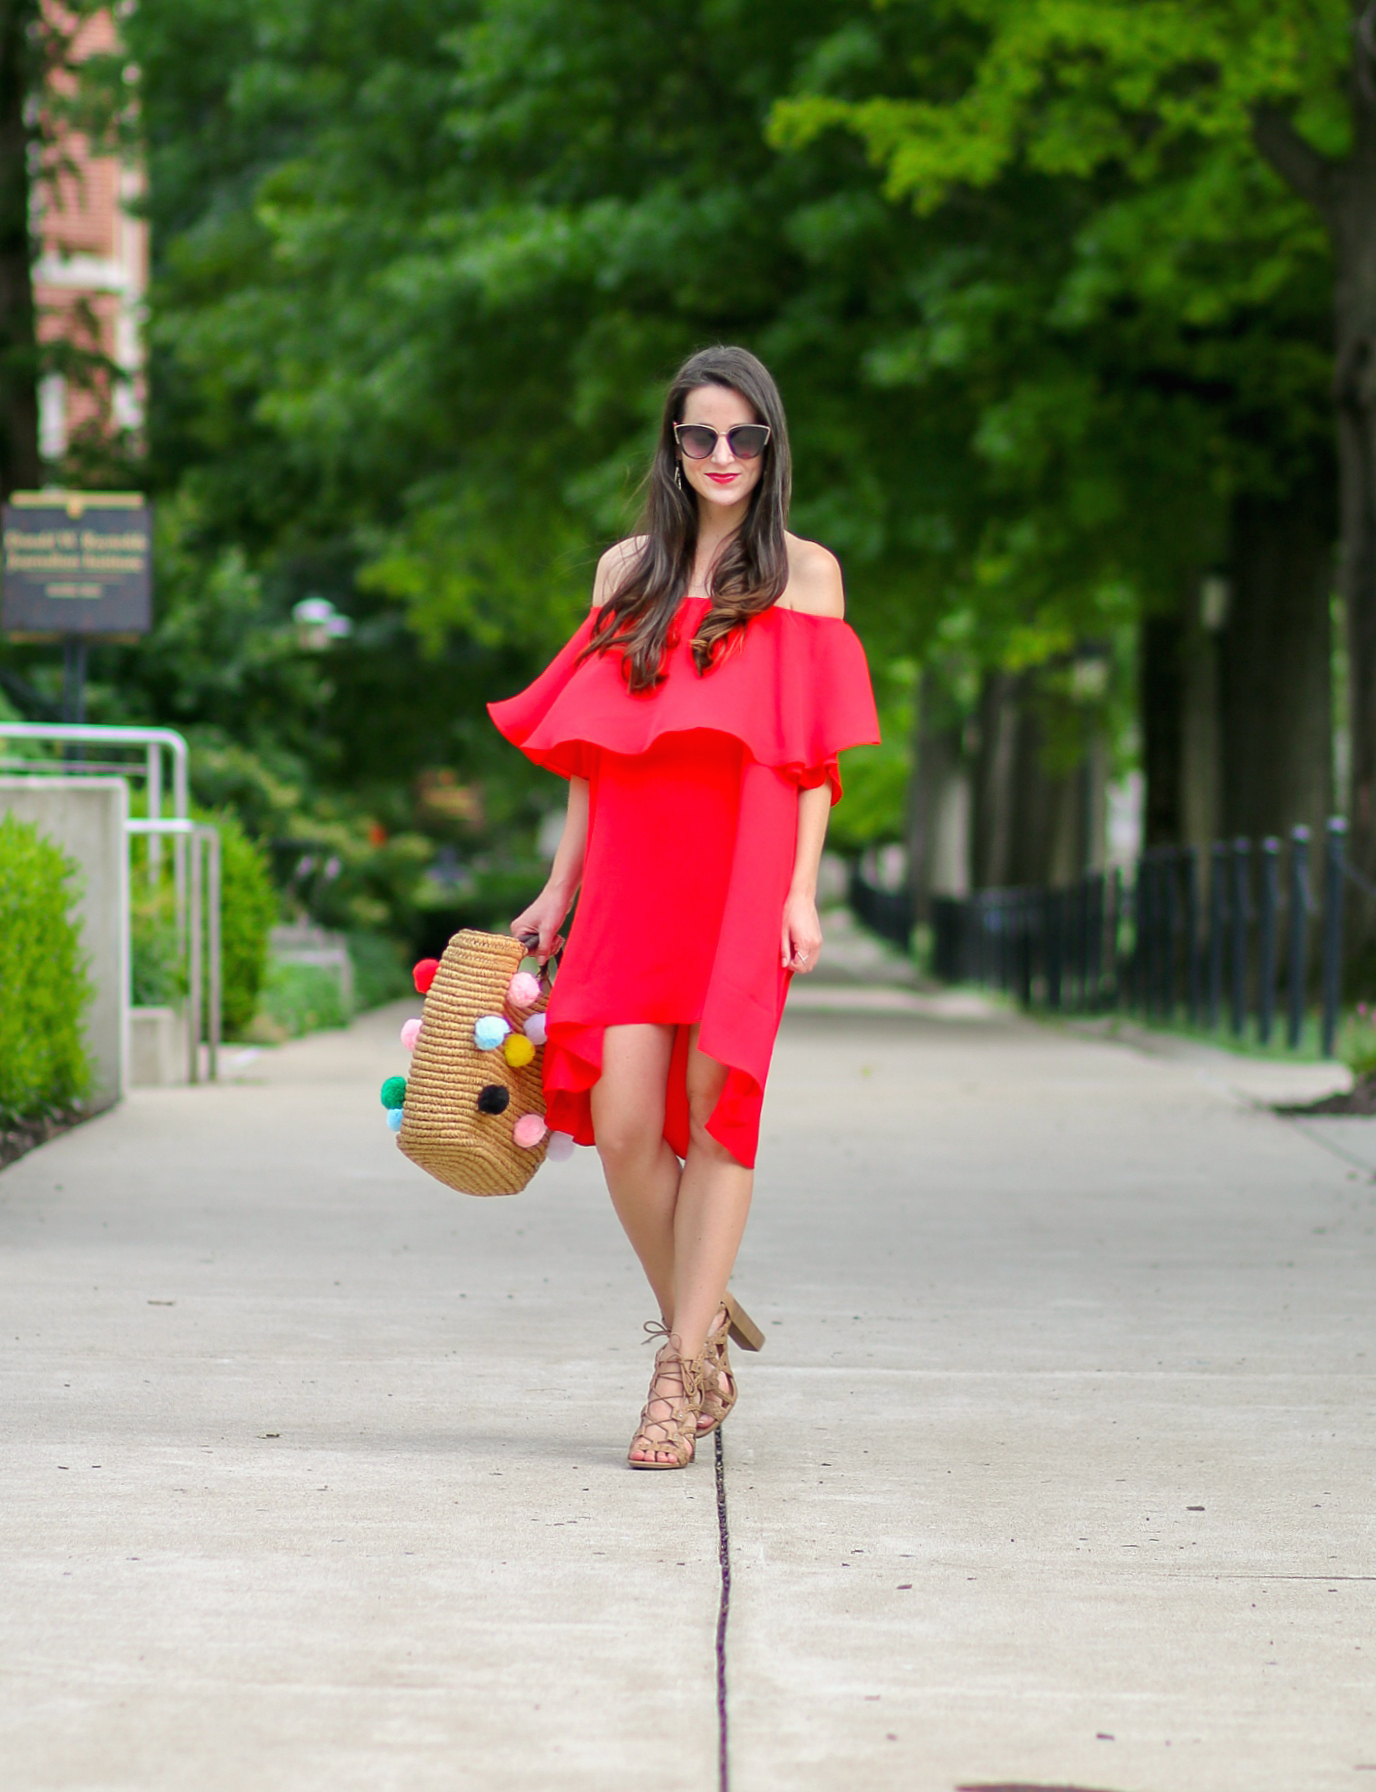 SheIn Red High Low Off the Shoulder Dress and DIY Pom Pom Tote Tutorial